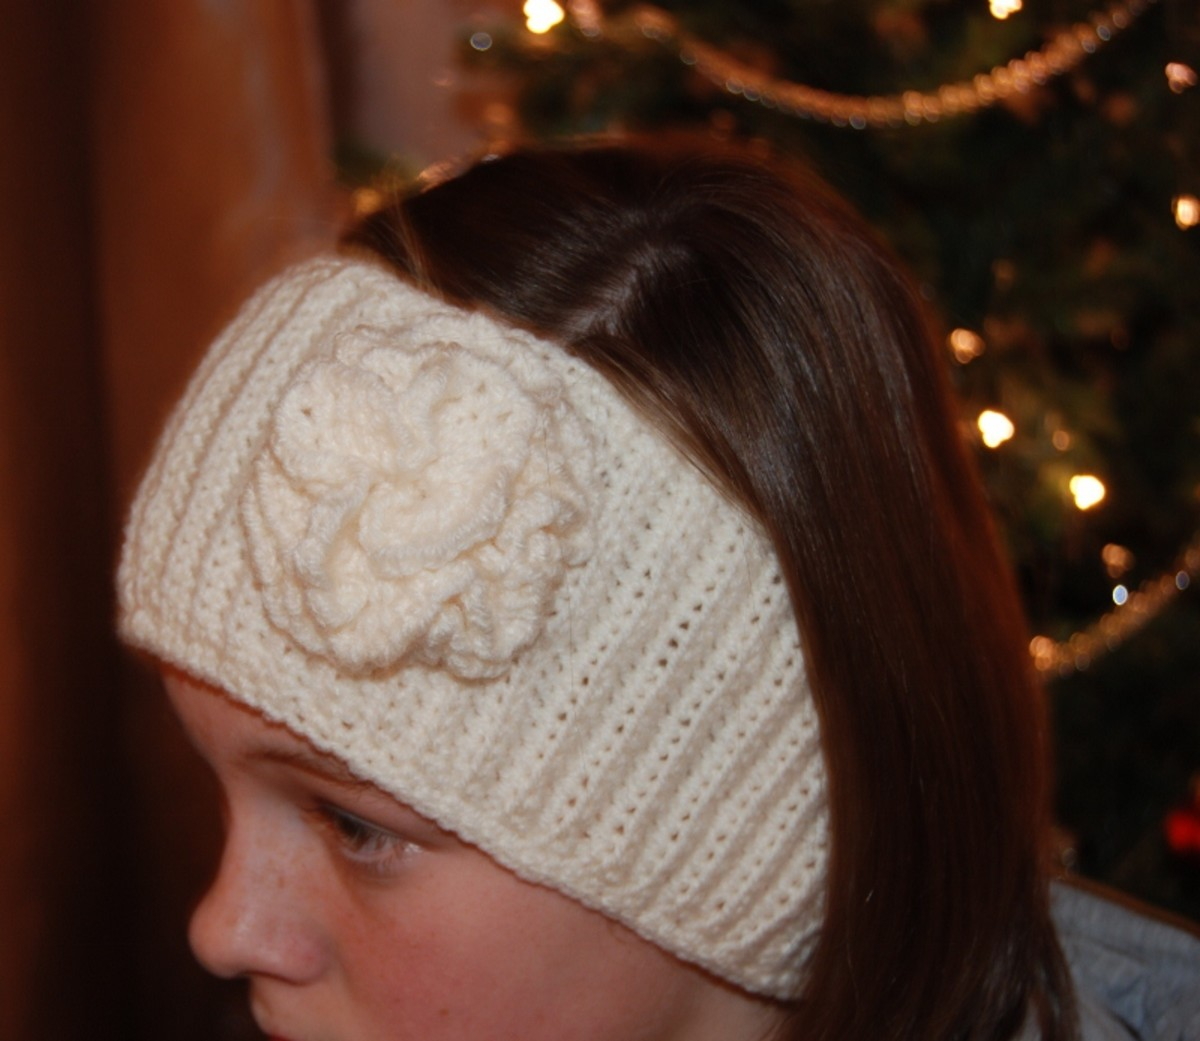 Free Crochet Pattern Headband With Flower : Free Crochet Patterns for Baby Headbands with Crochet Flowers